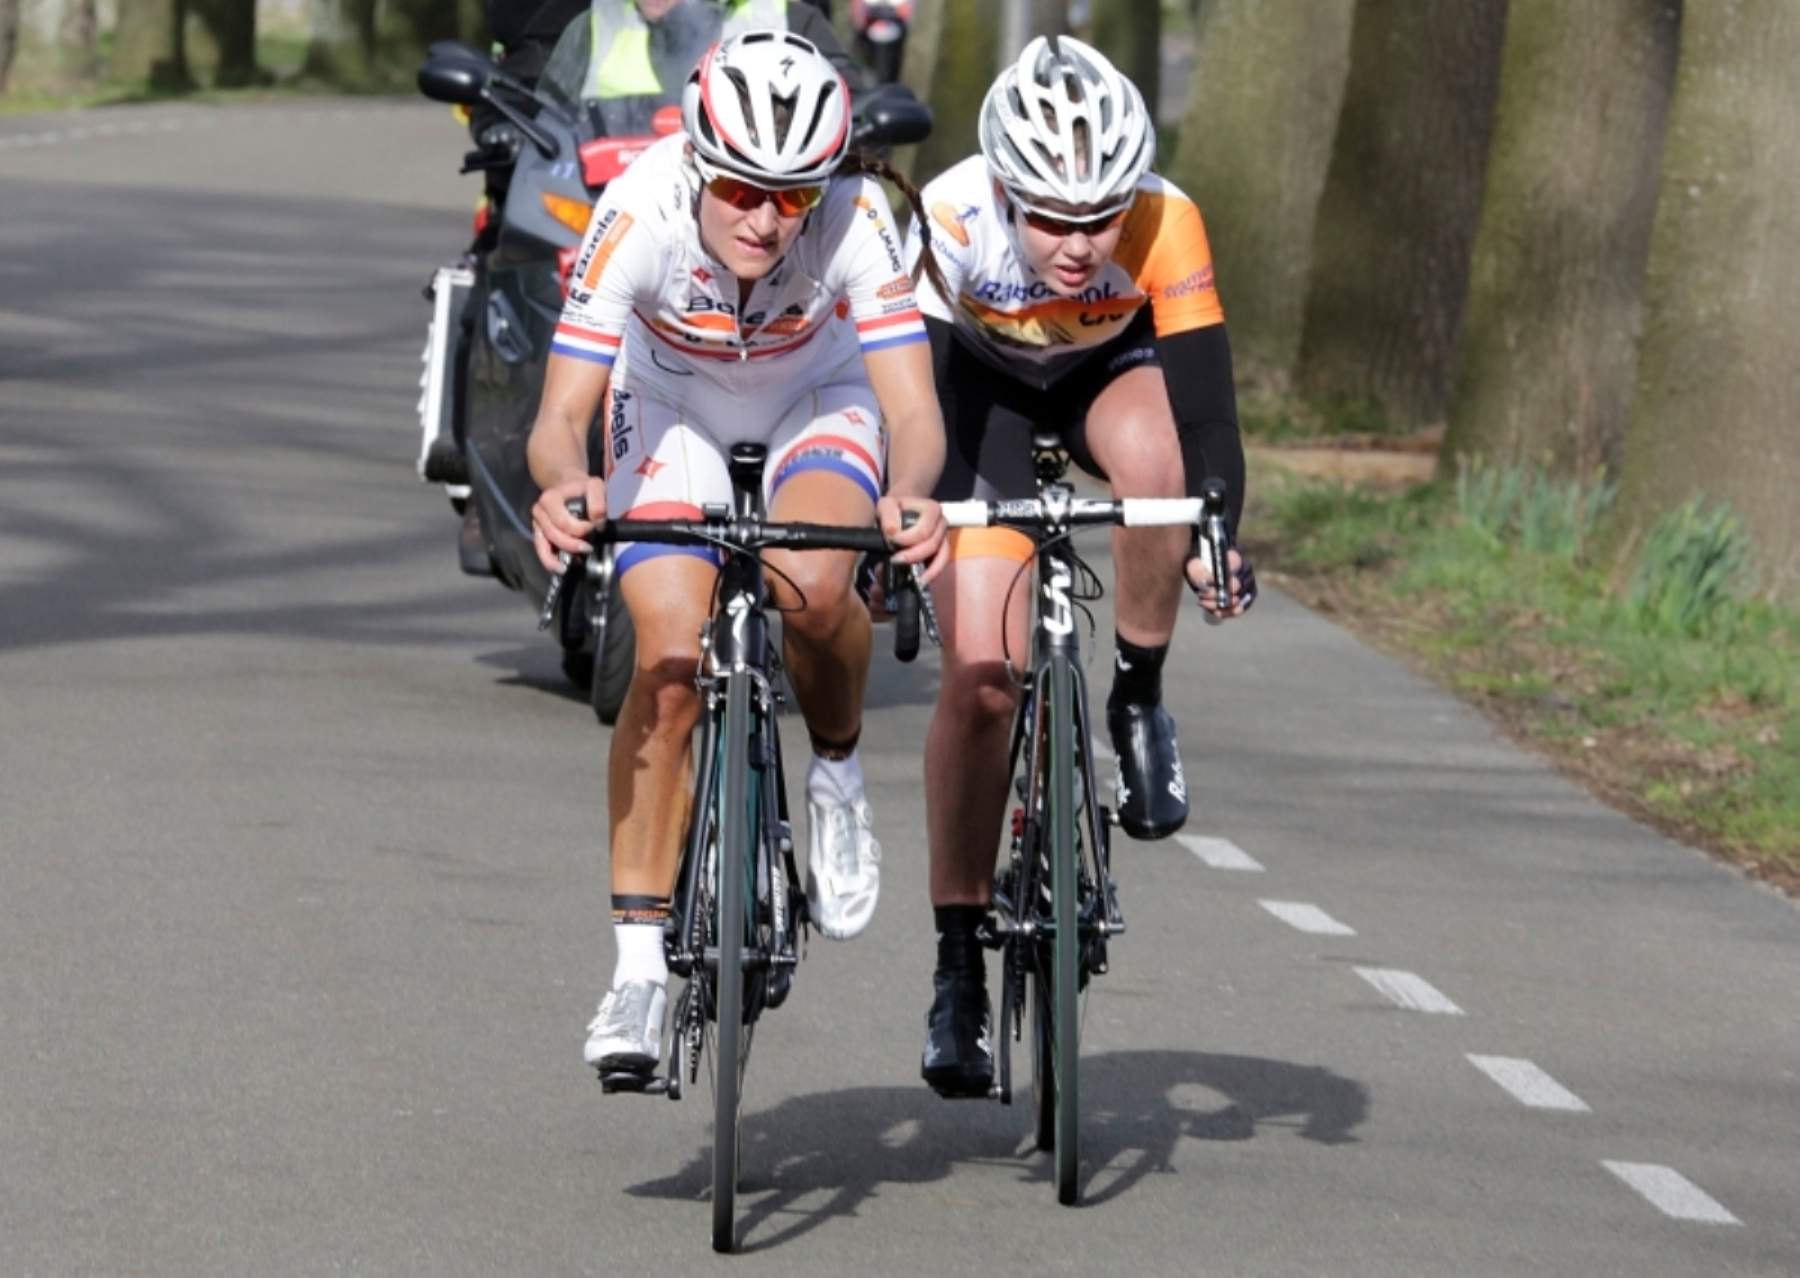 Lizzie Armitstead had good finishes in first two stages